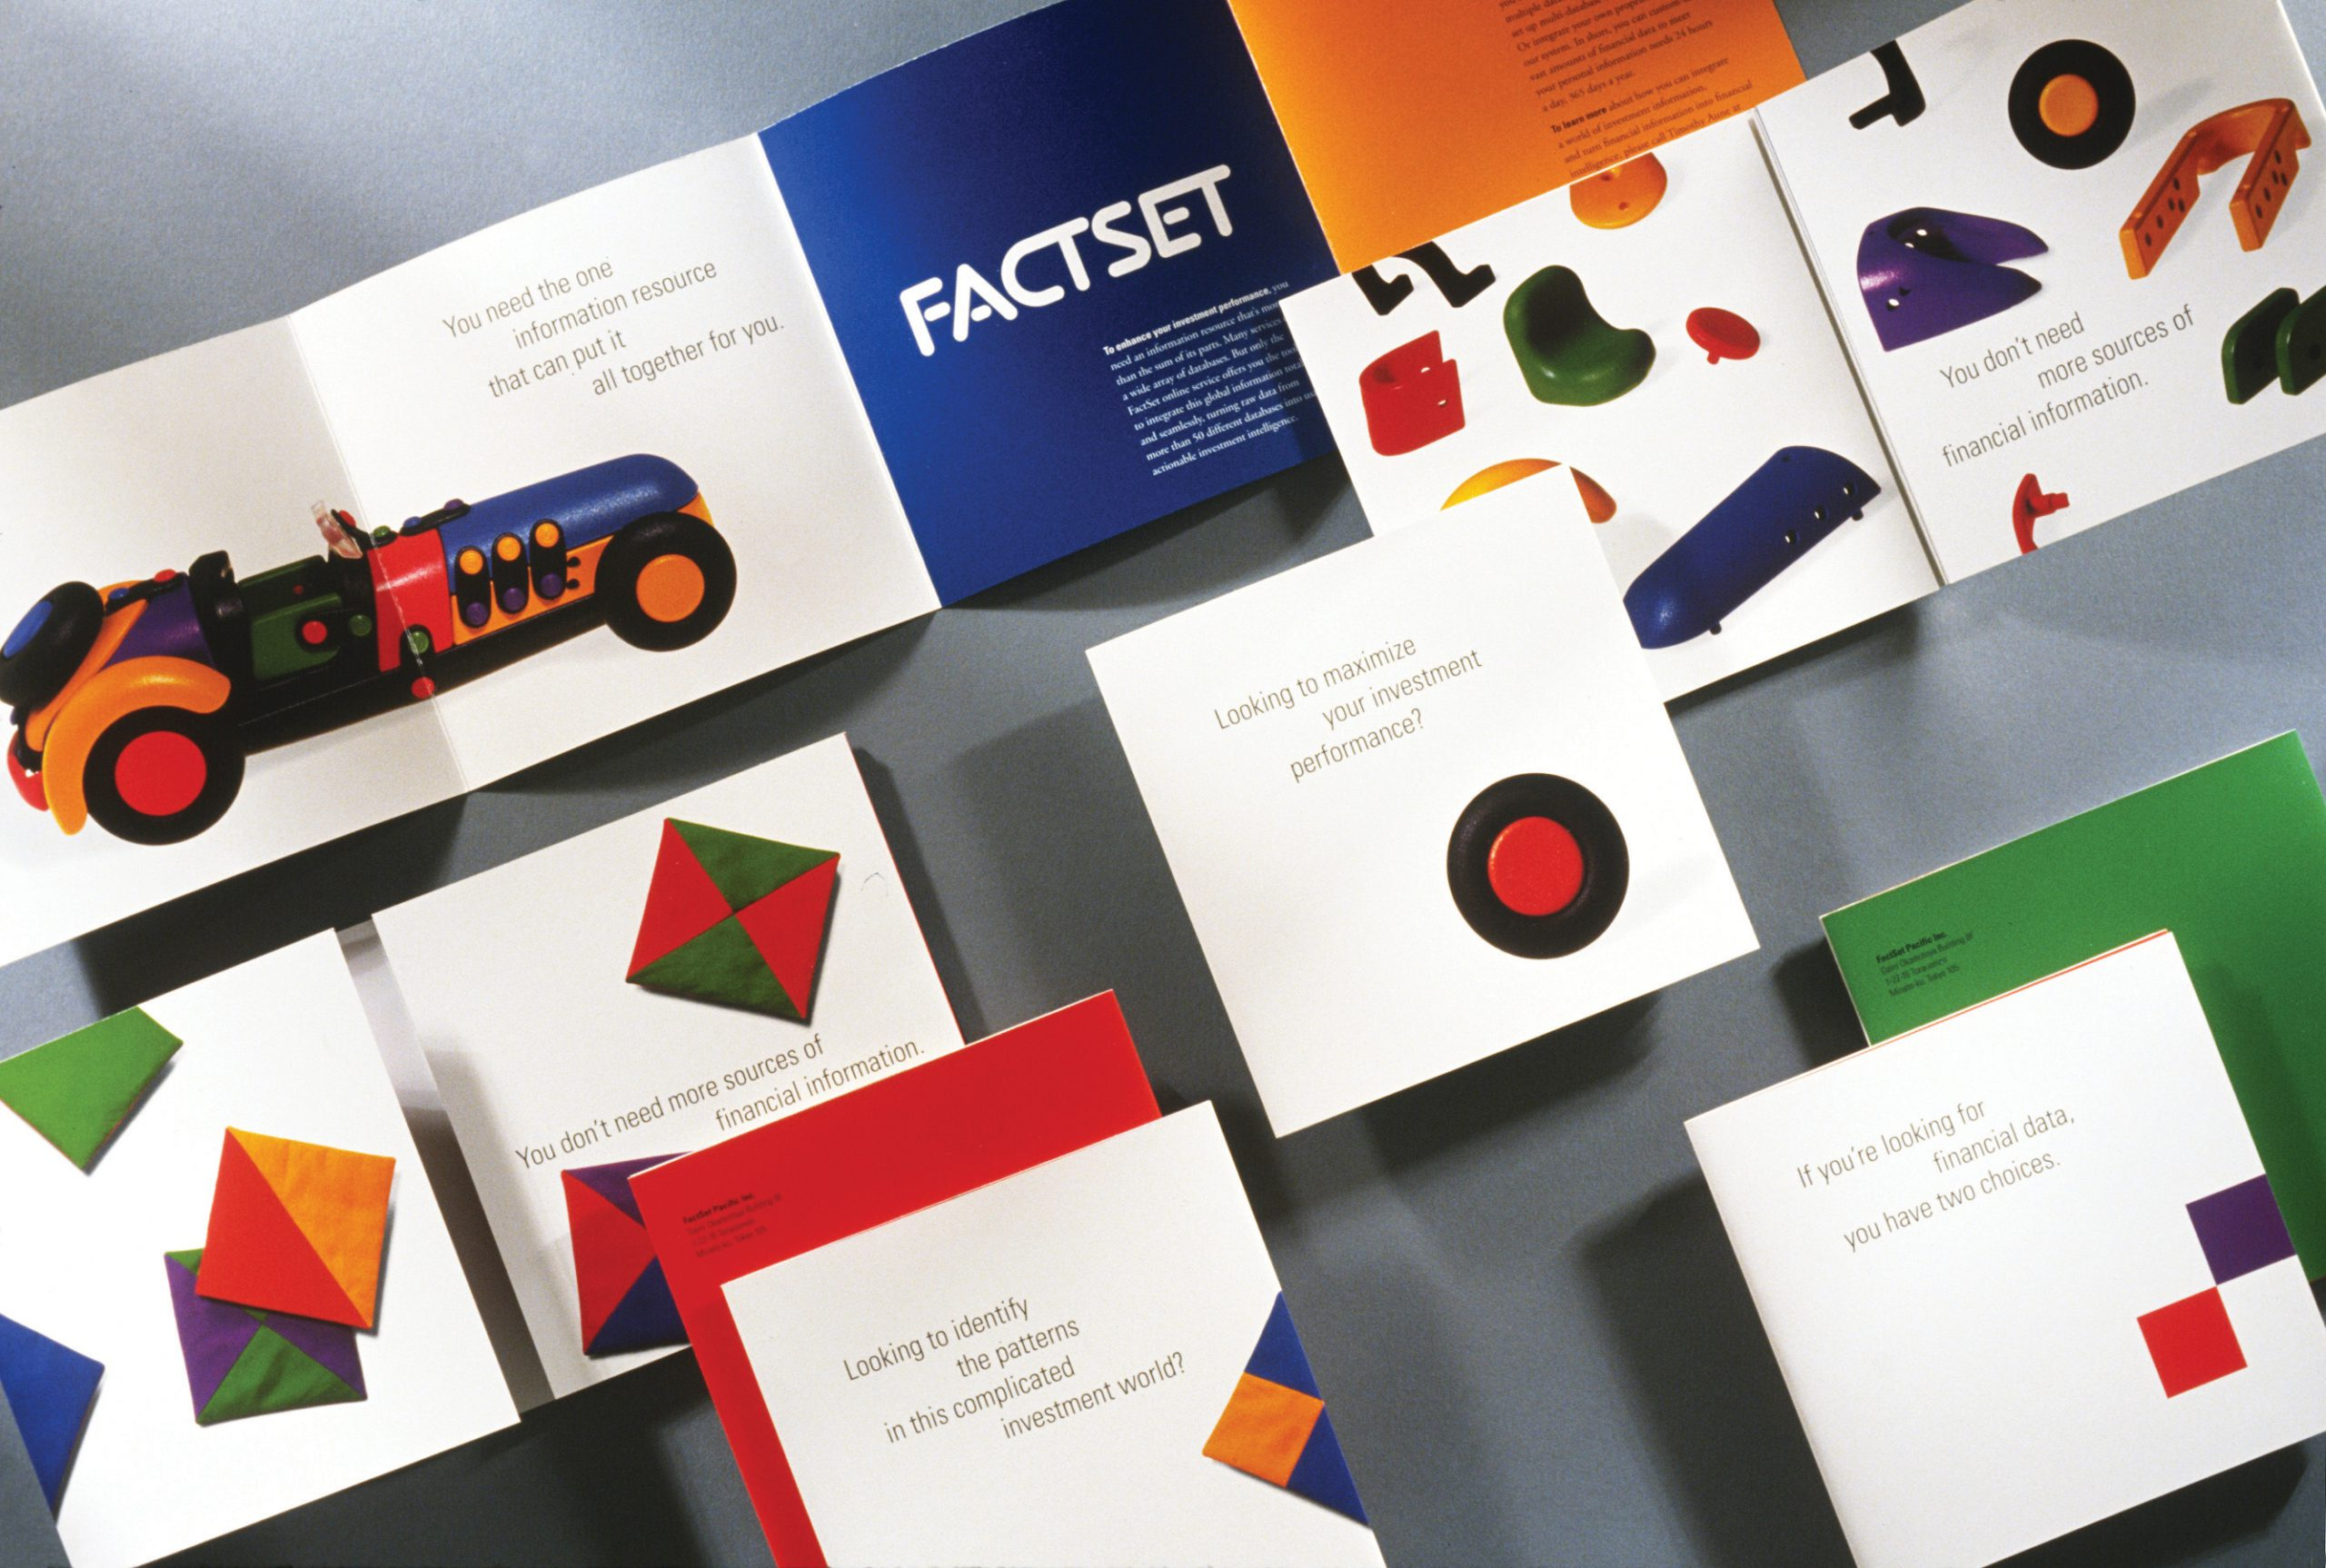 Project image 4 for Print Communication, FactSet Research Systems